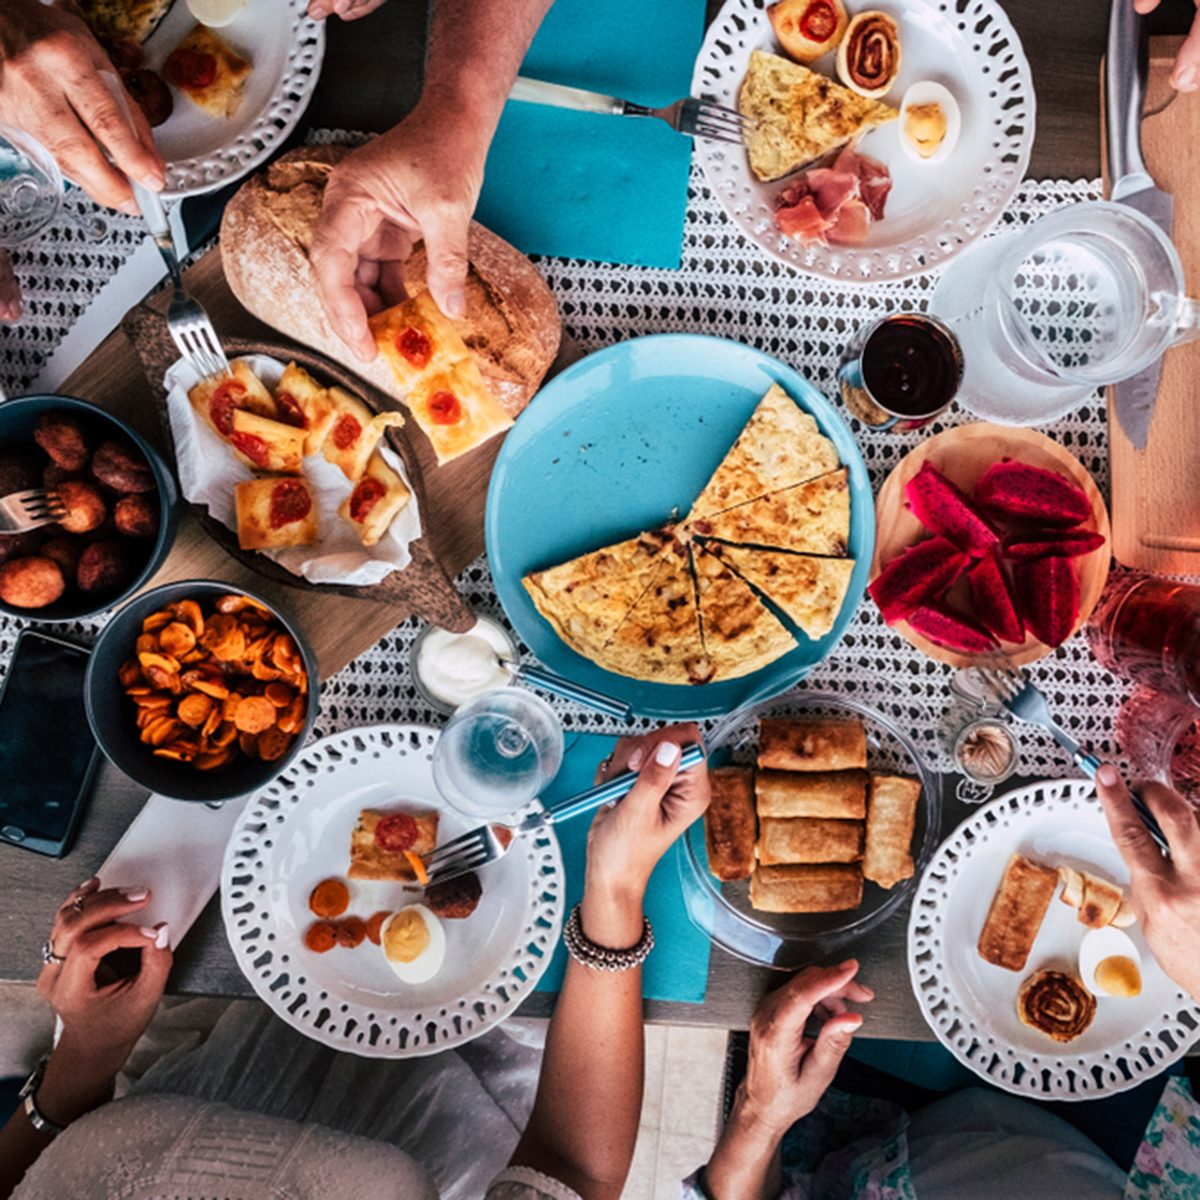 Above aerial view of group of friends having fun eating together at lunch or dinner with a table full of different and colorful food and technology mobile phone. mix of hands of caucasian people ; Shutterstock ID 1196986168; Job (TFH, TOH, RD, BNB, CWM, CM): TOH